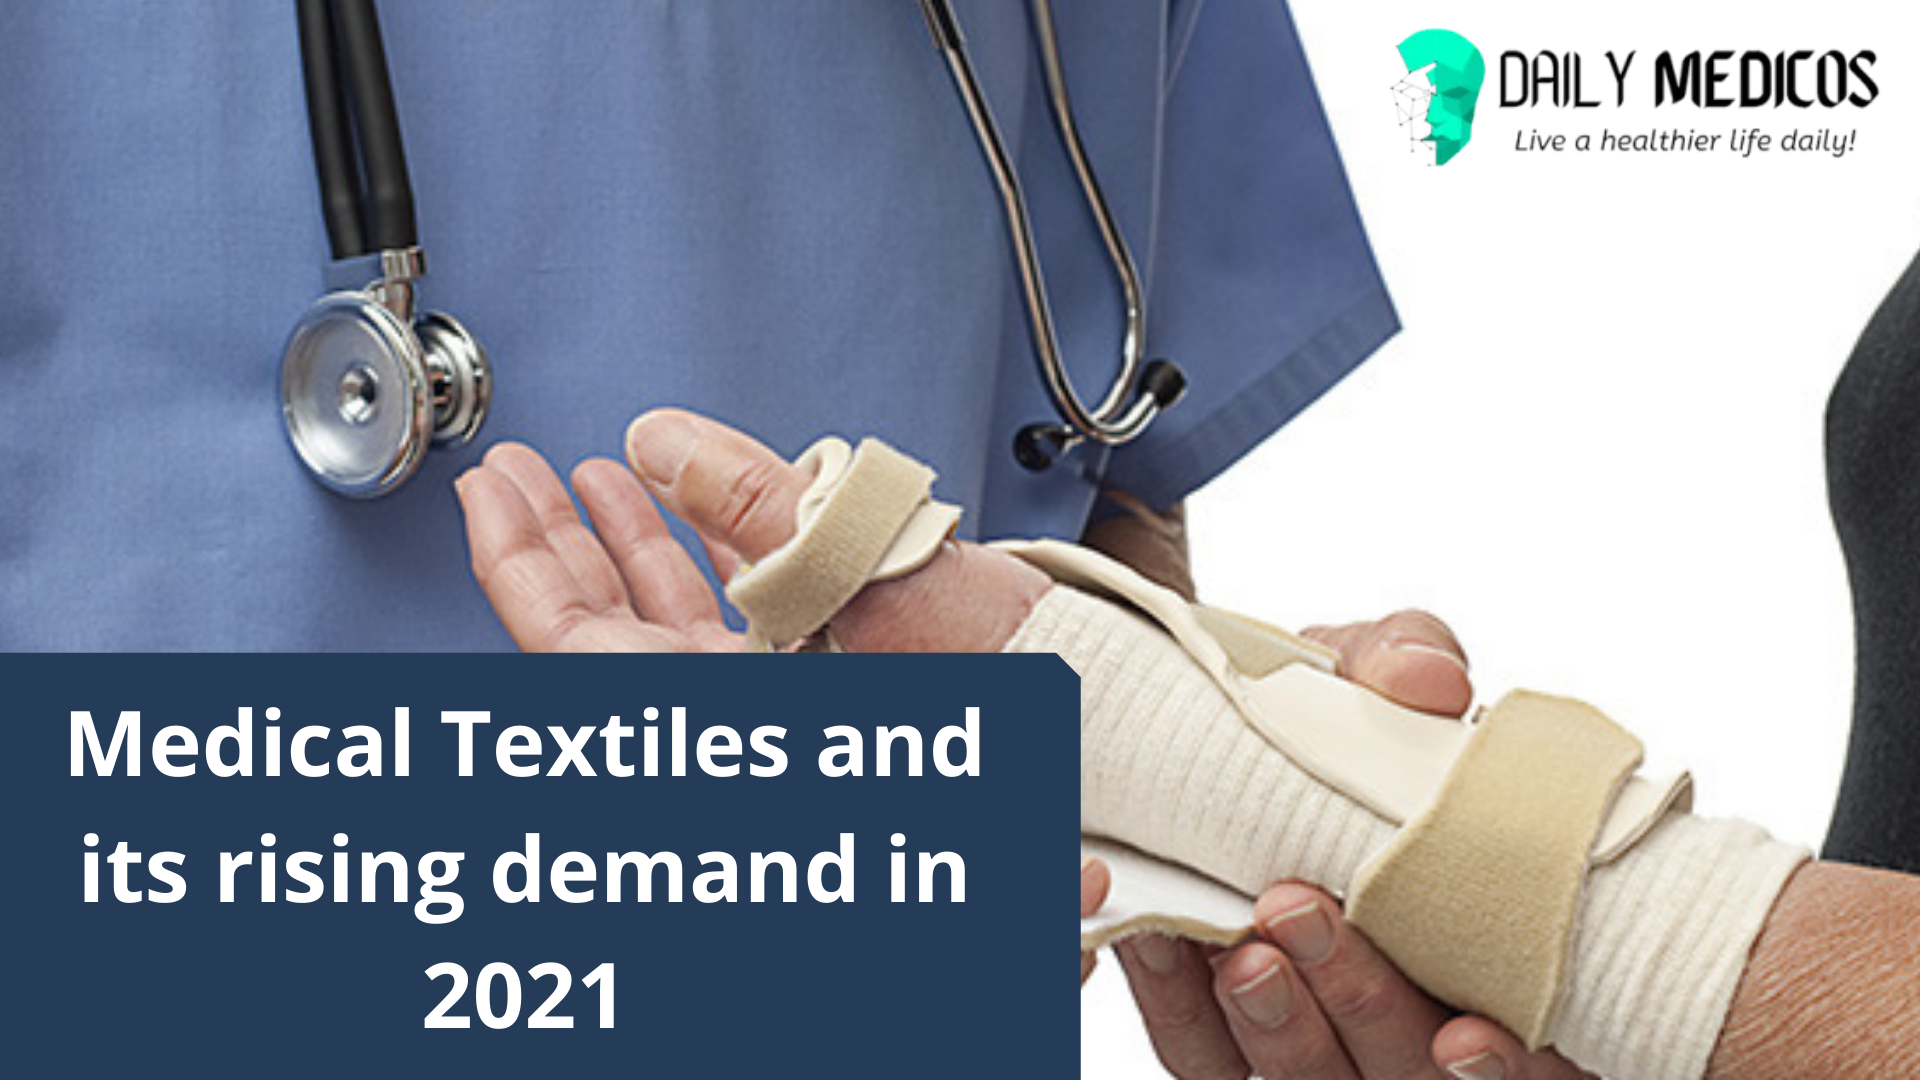 Medical Textiles & Its Rising Demand in 2021 [Detailed Guide] 1 - Daily Medicos